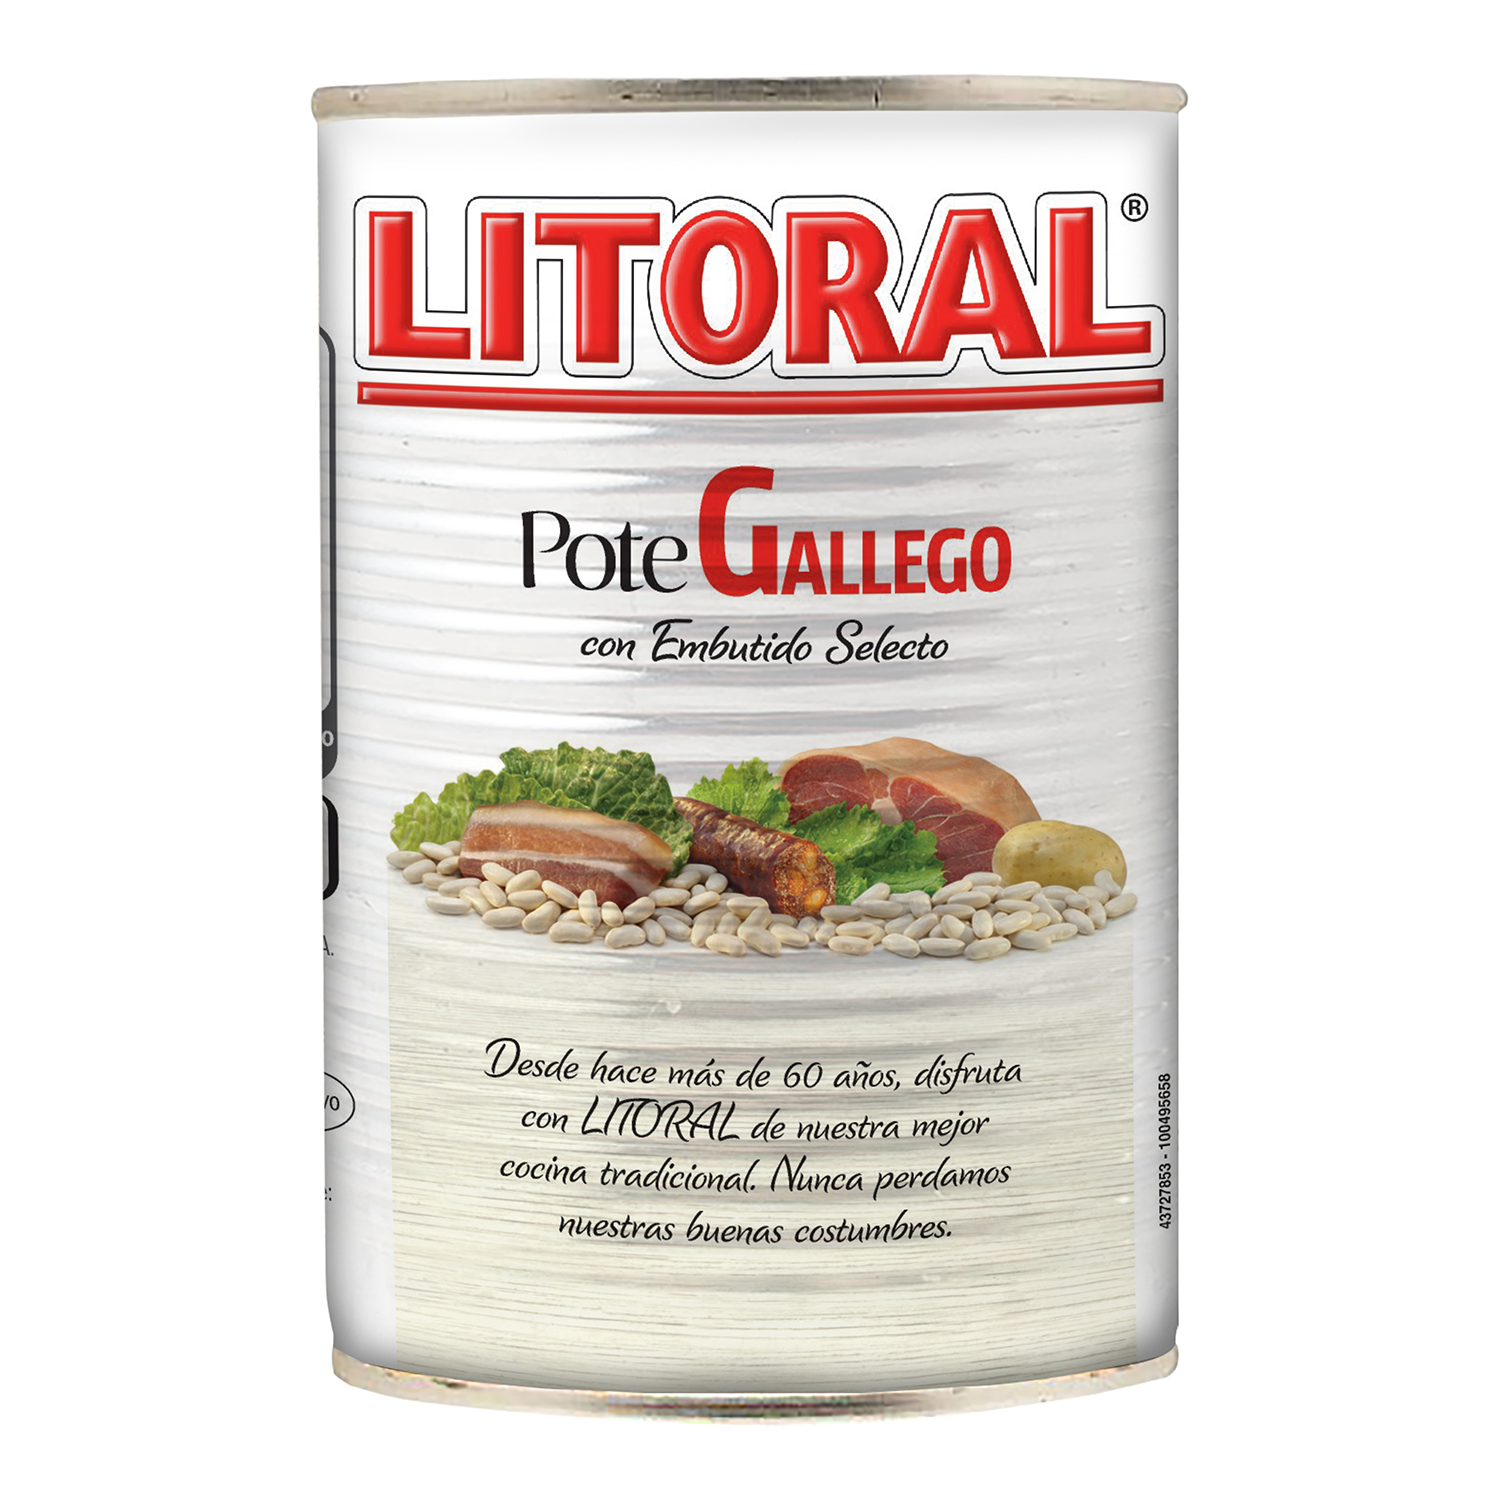 Pote Gallego Litoral 430 g. - 3